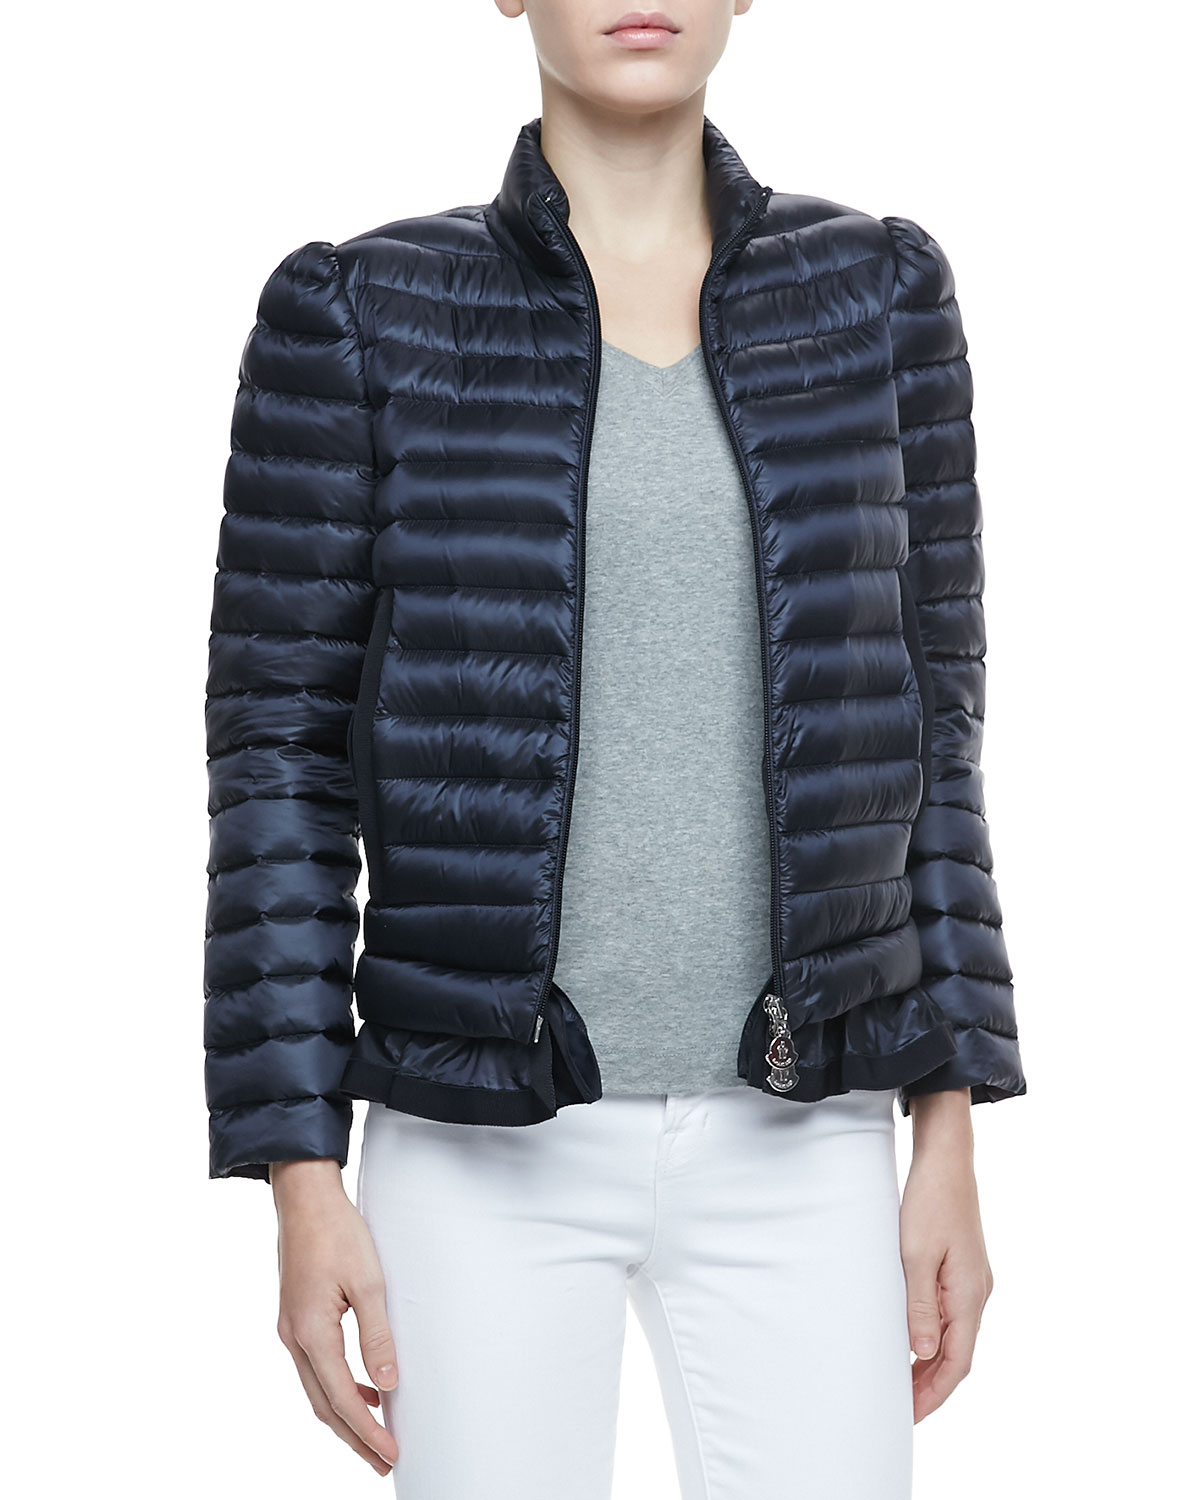 moncler coats saks def for sale rh tabago vacation rentals com